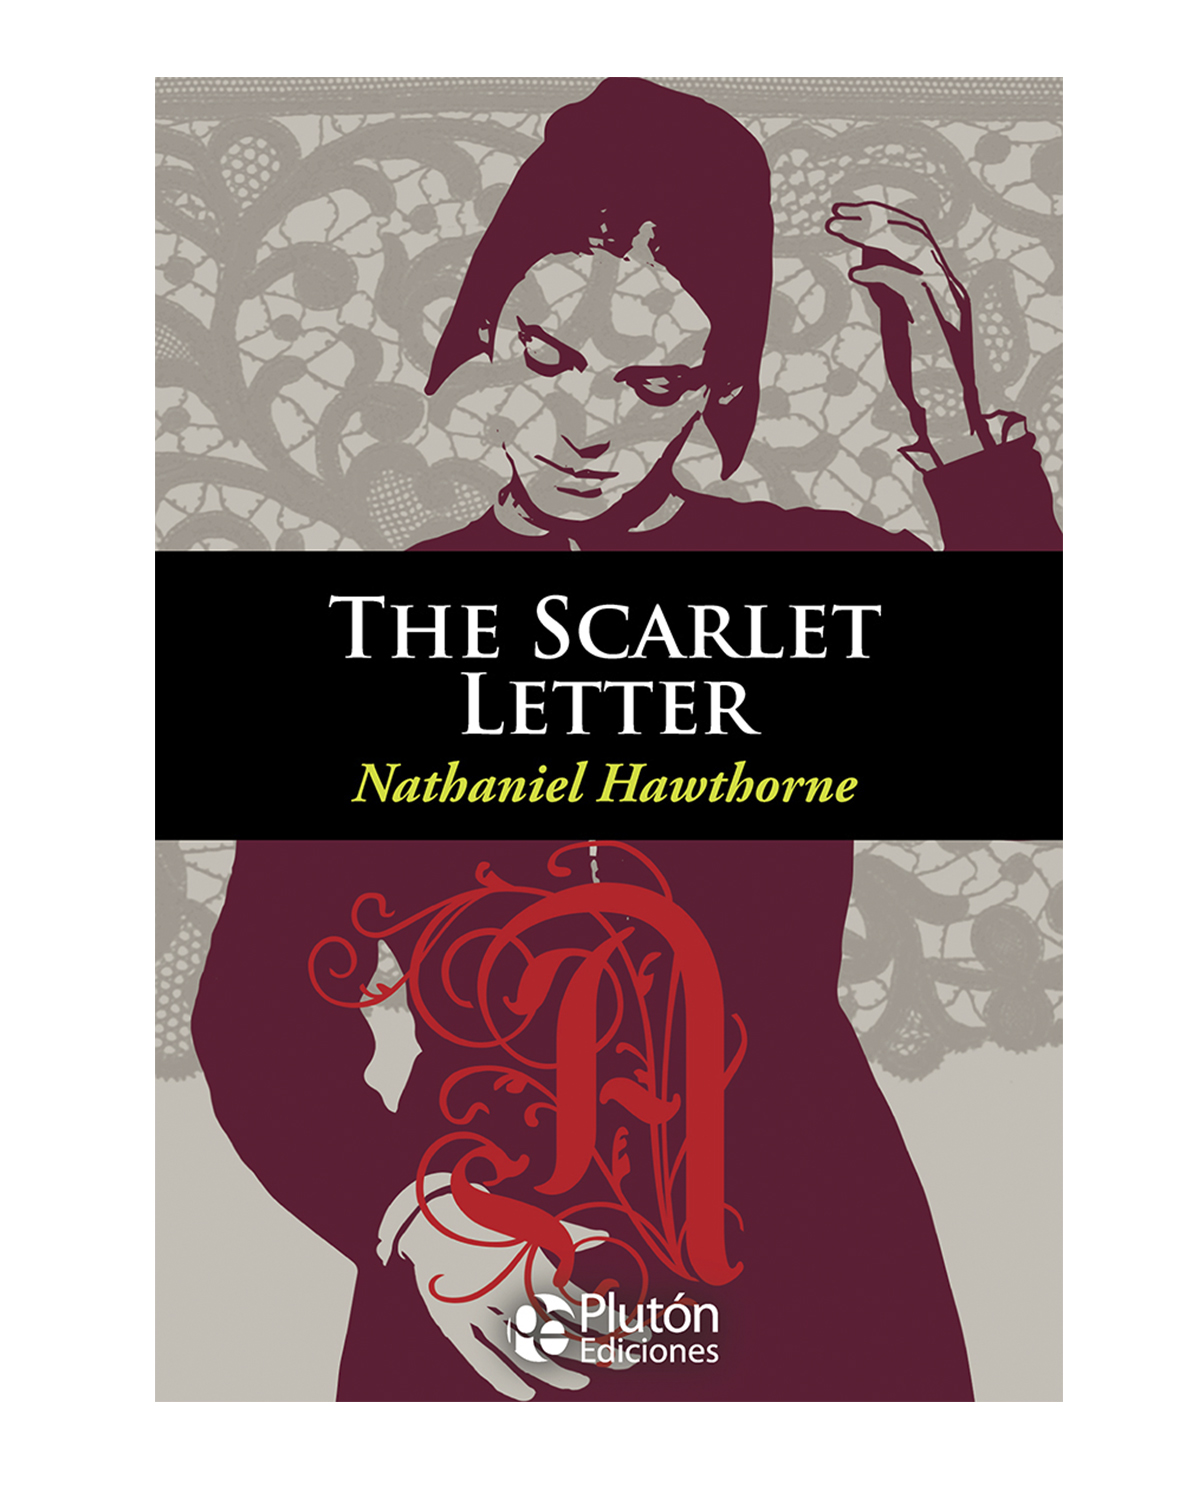 In The Scarlet Letter